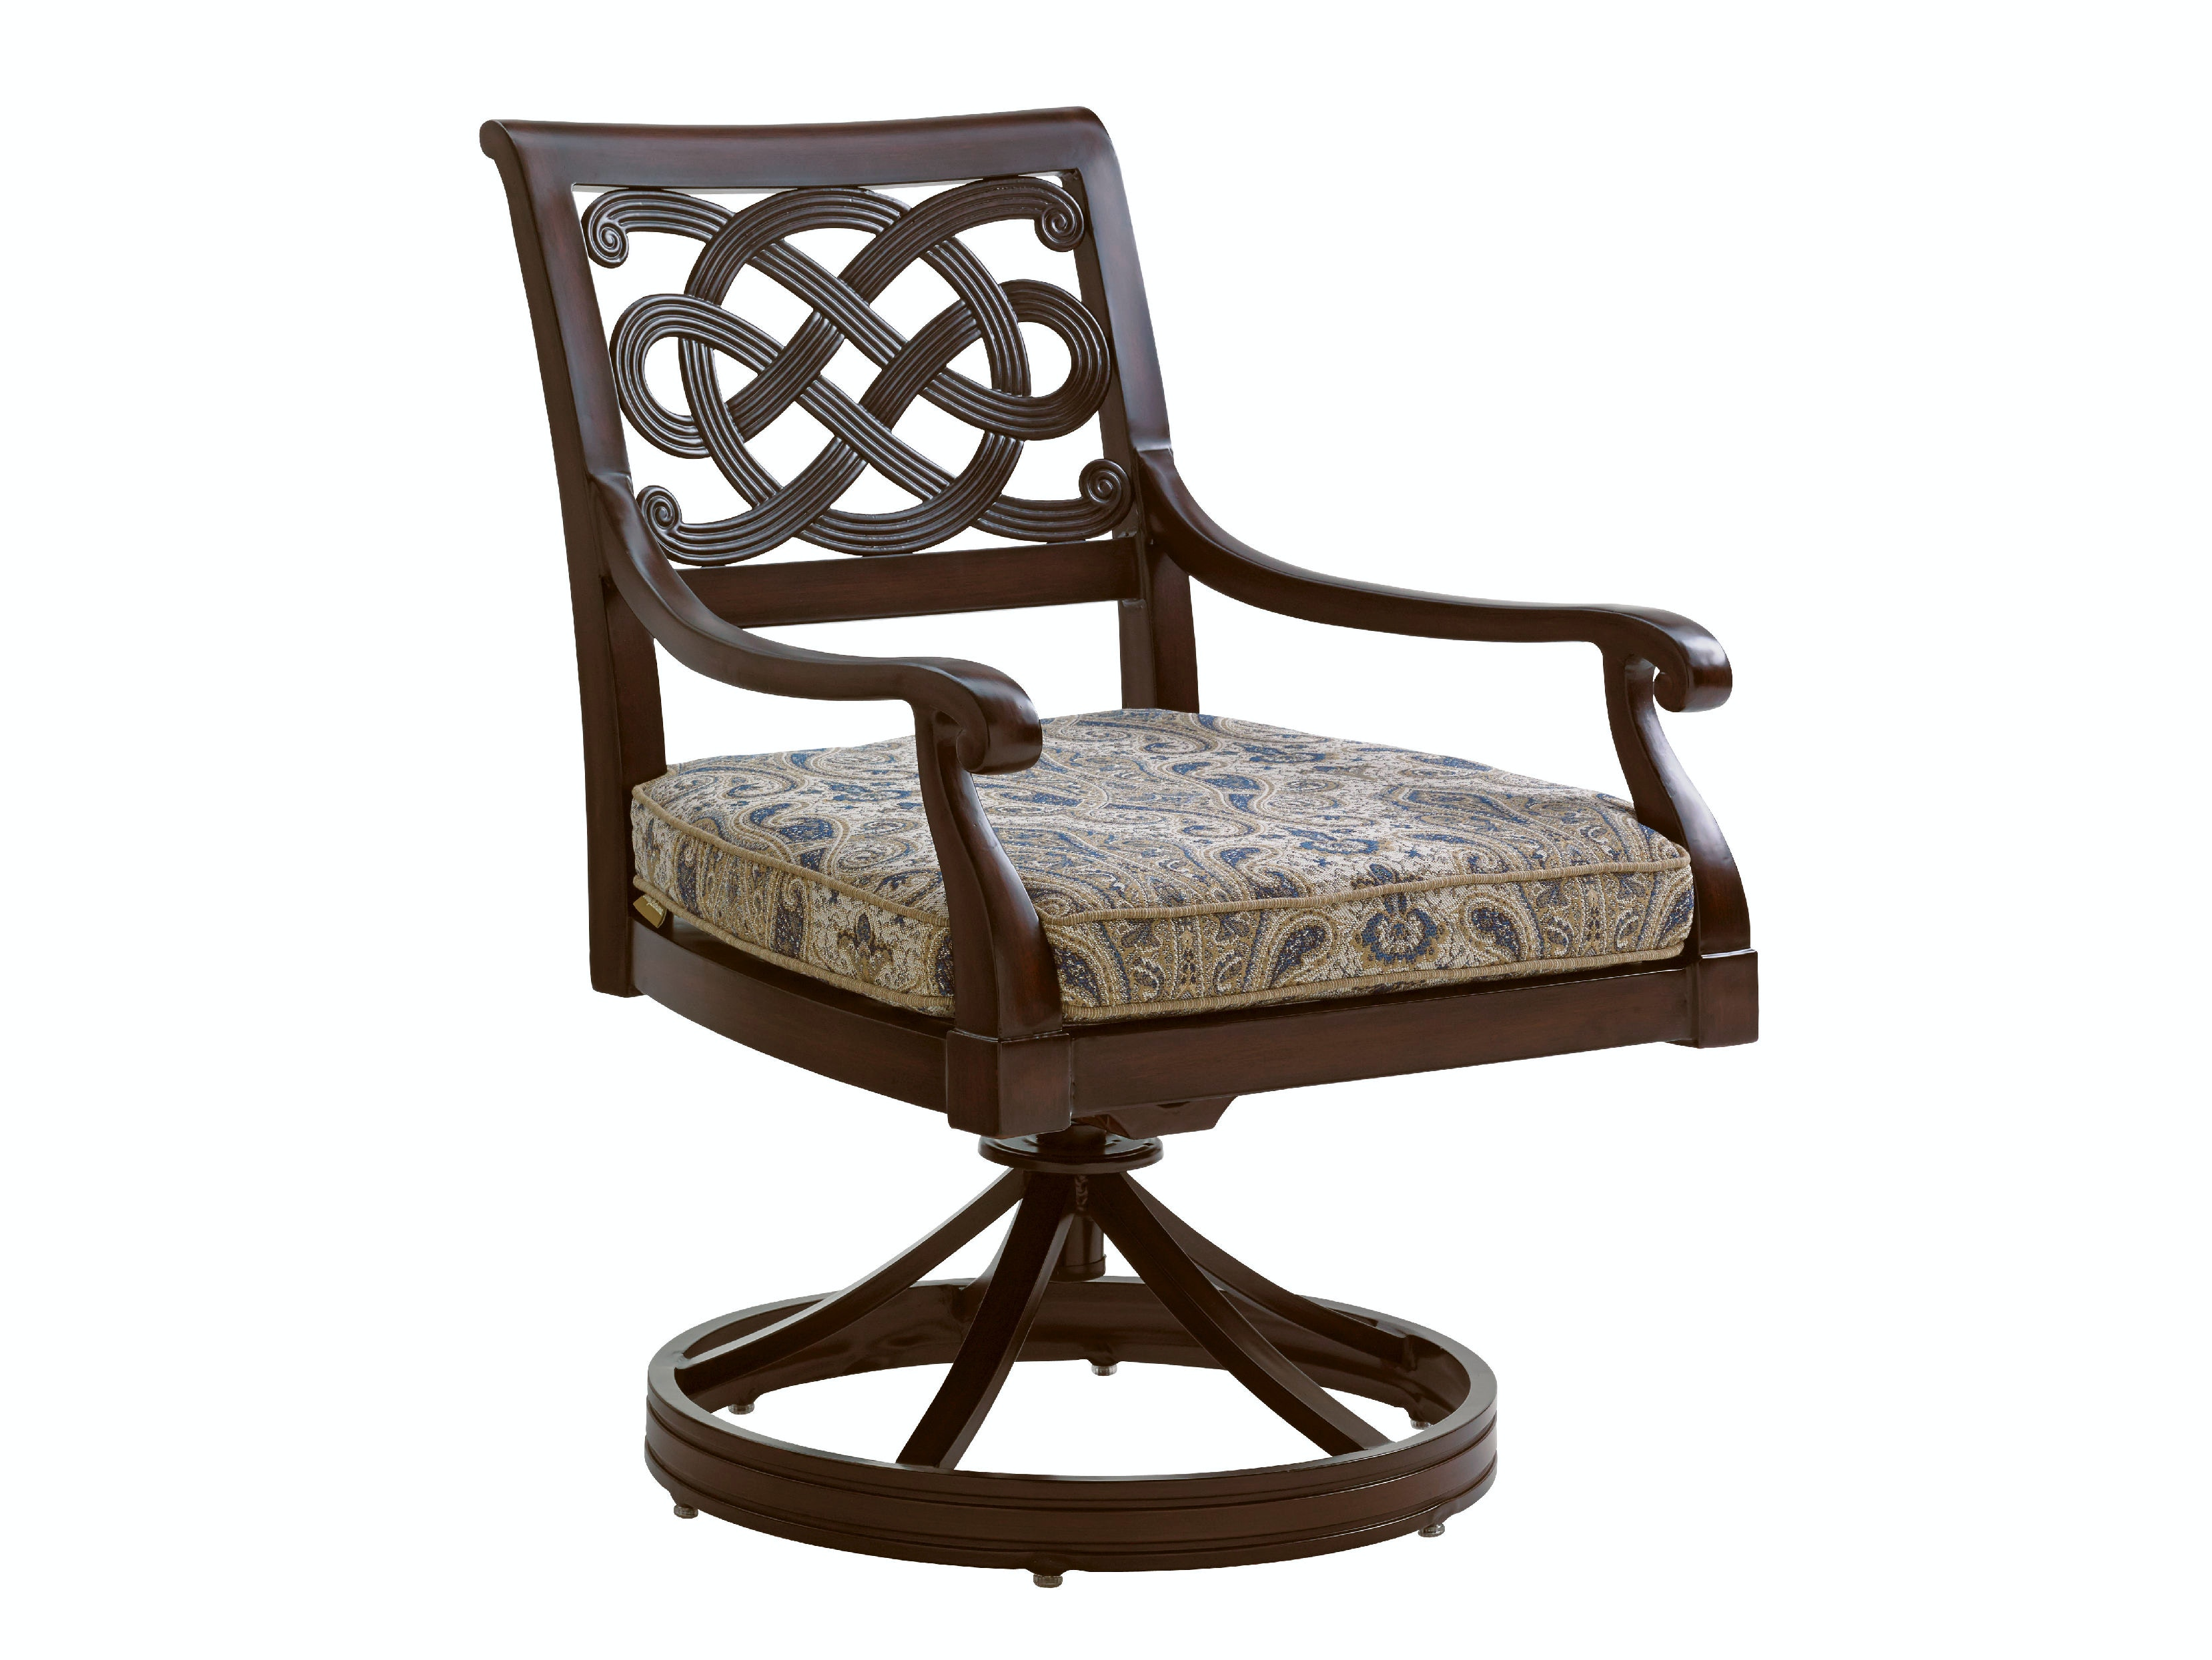 Tommy bahama outdoor living outdoorpatio swivel rocker dining chair